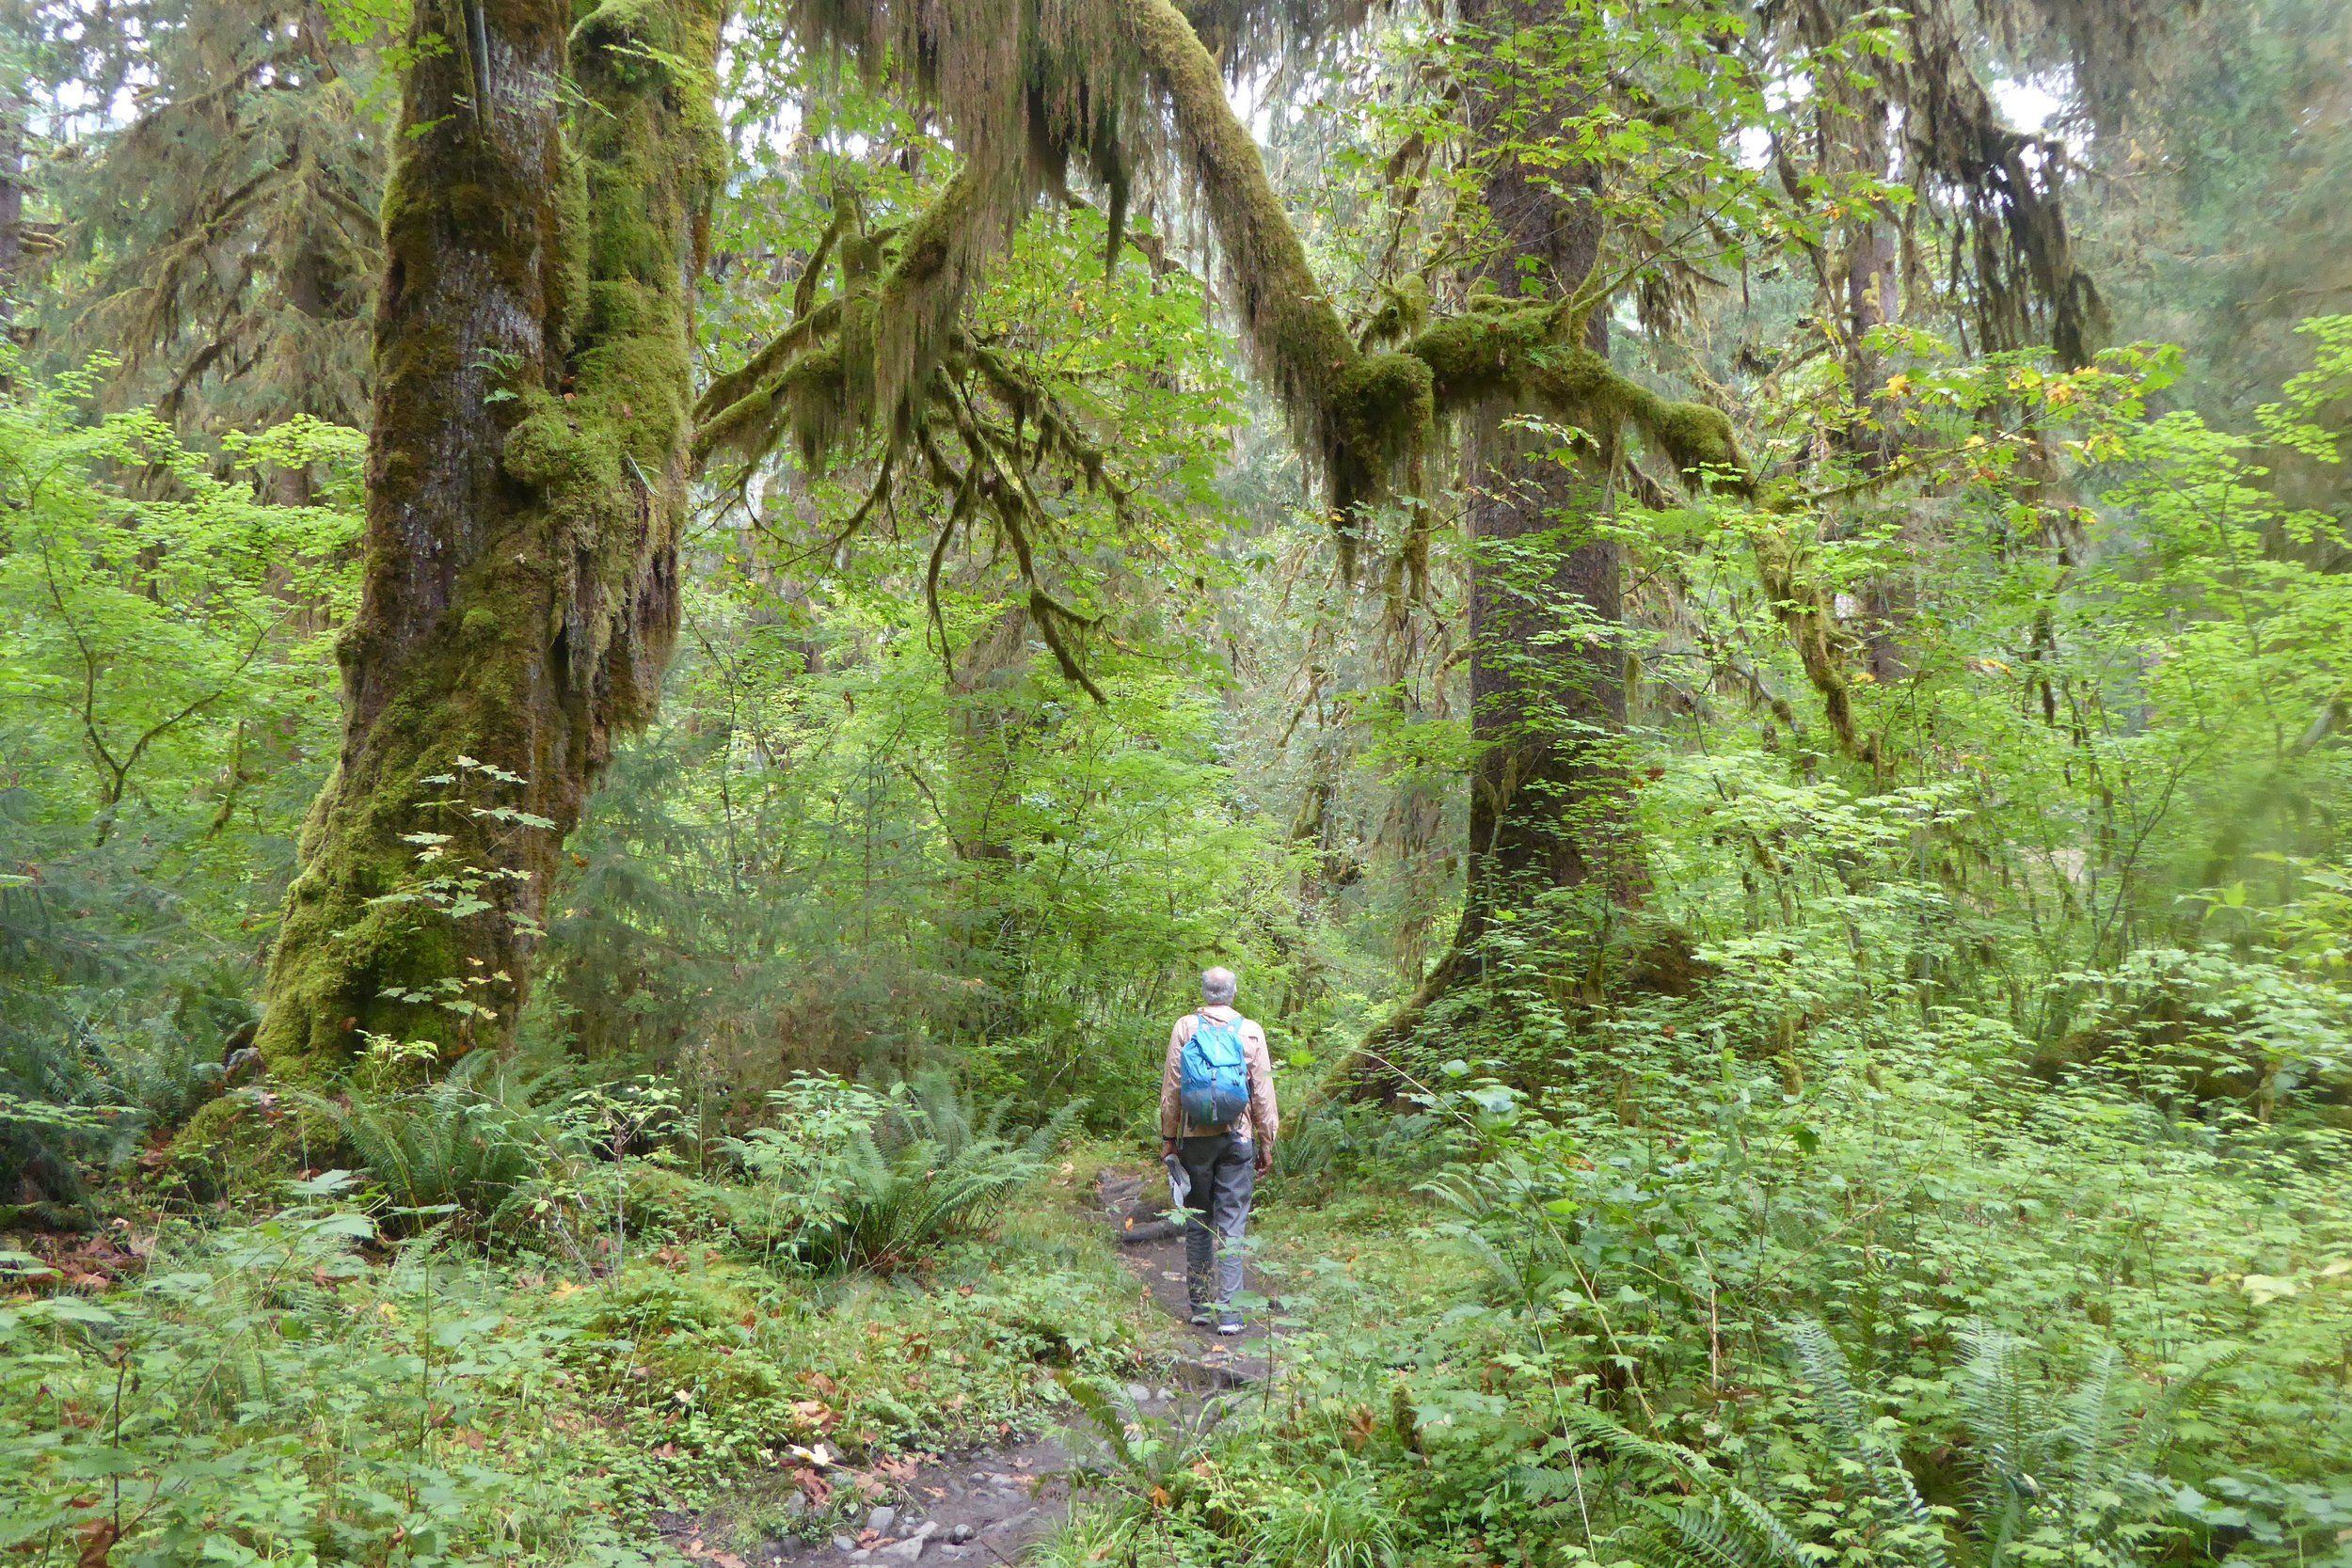 A hike filled with old growth forest.